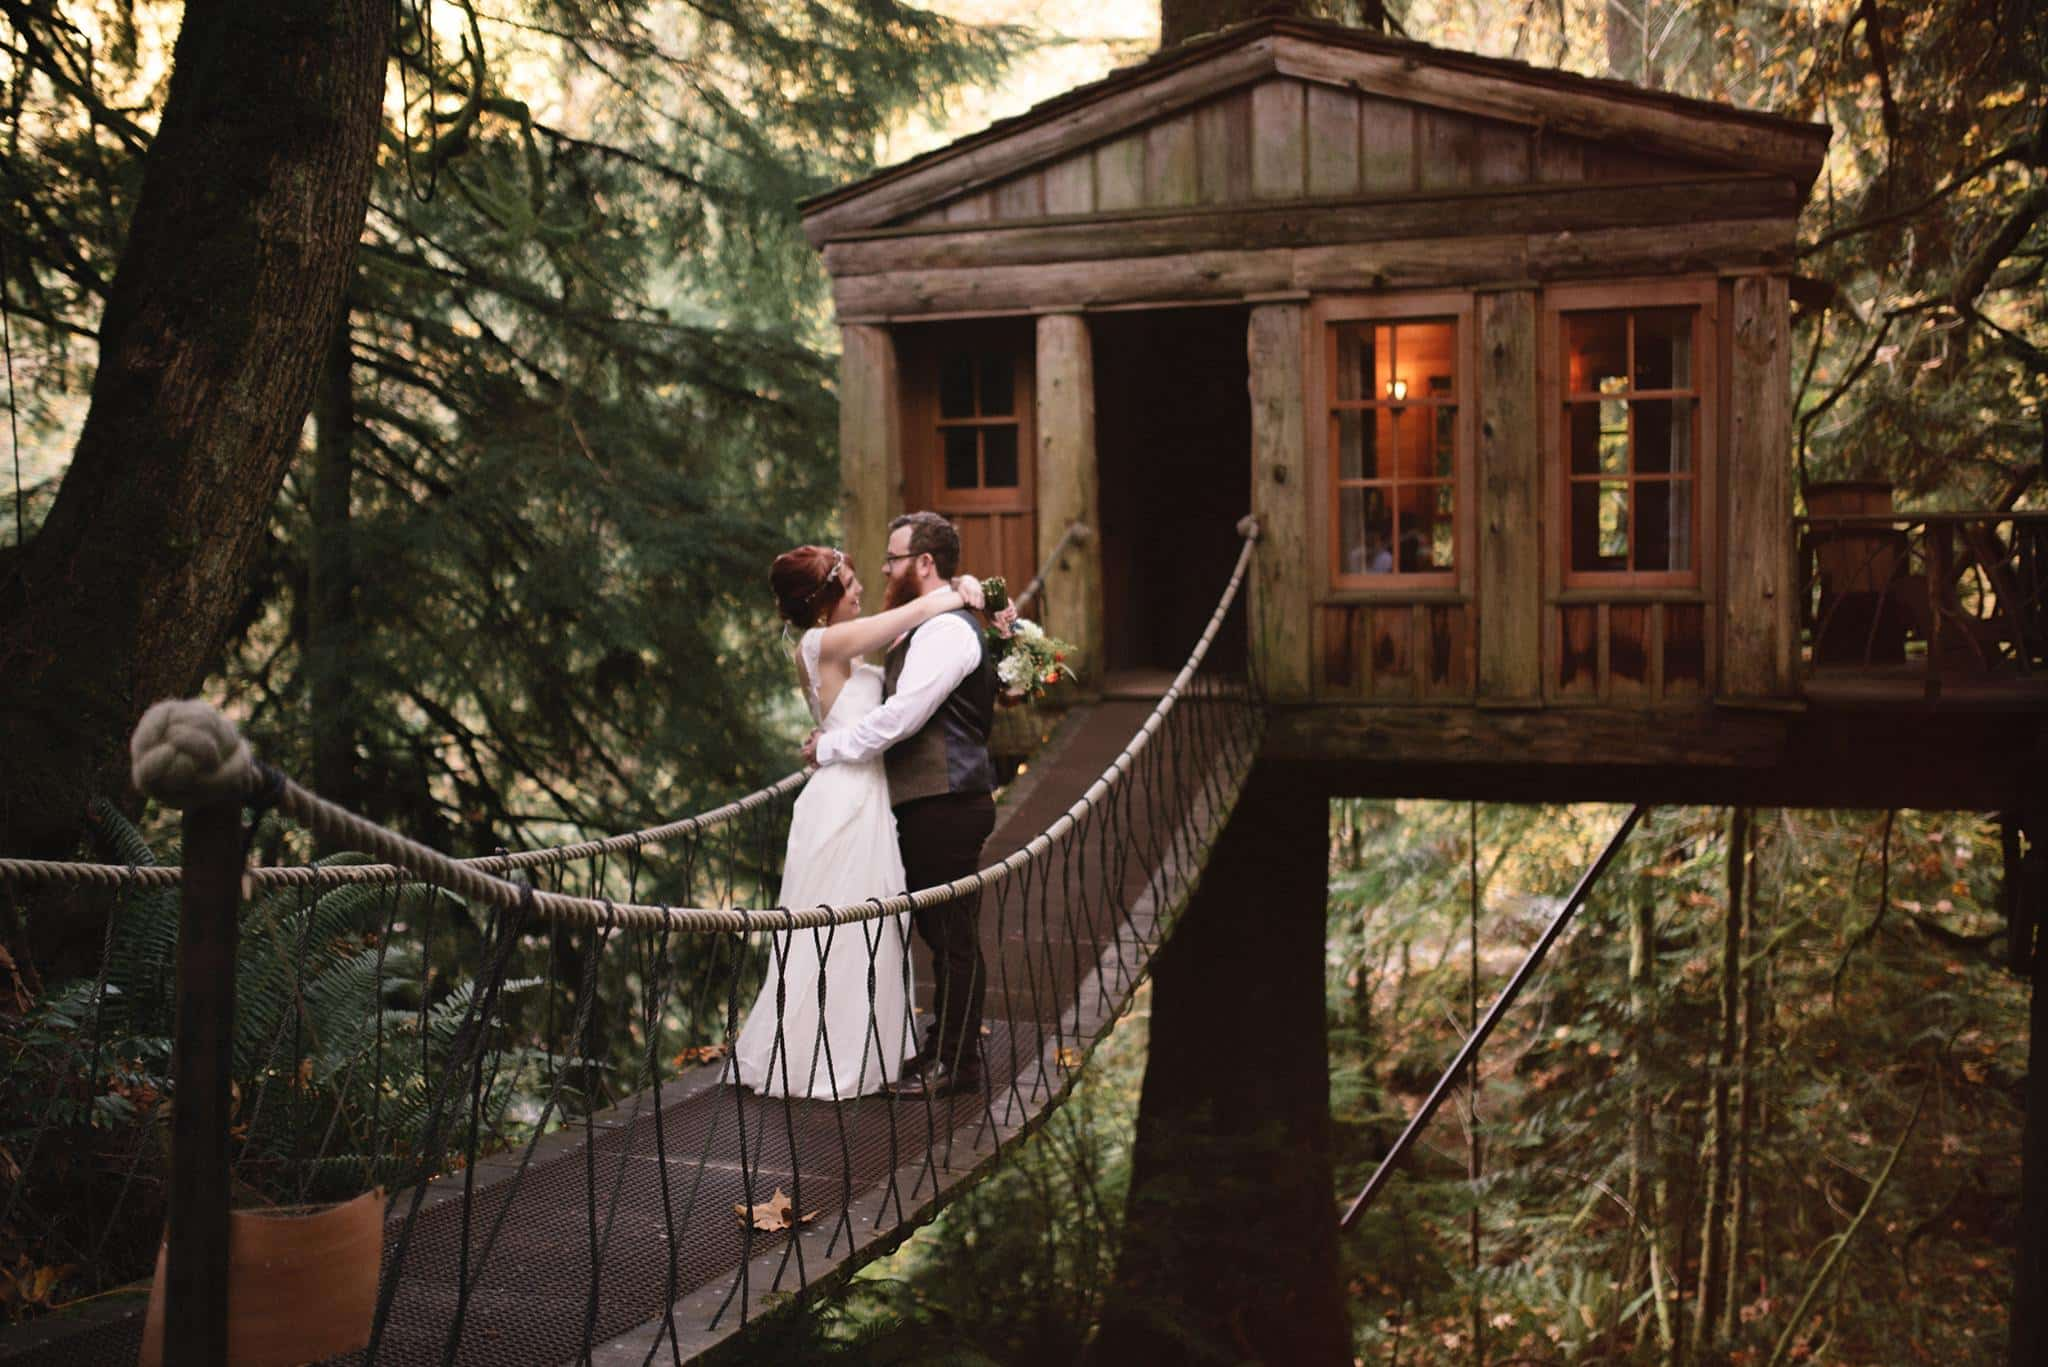 5 Romantic Nature Date Tree Houses in Kerala that every couple should visit this year